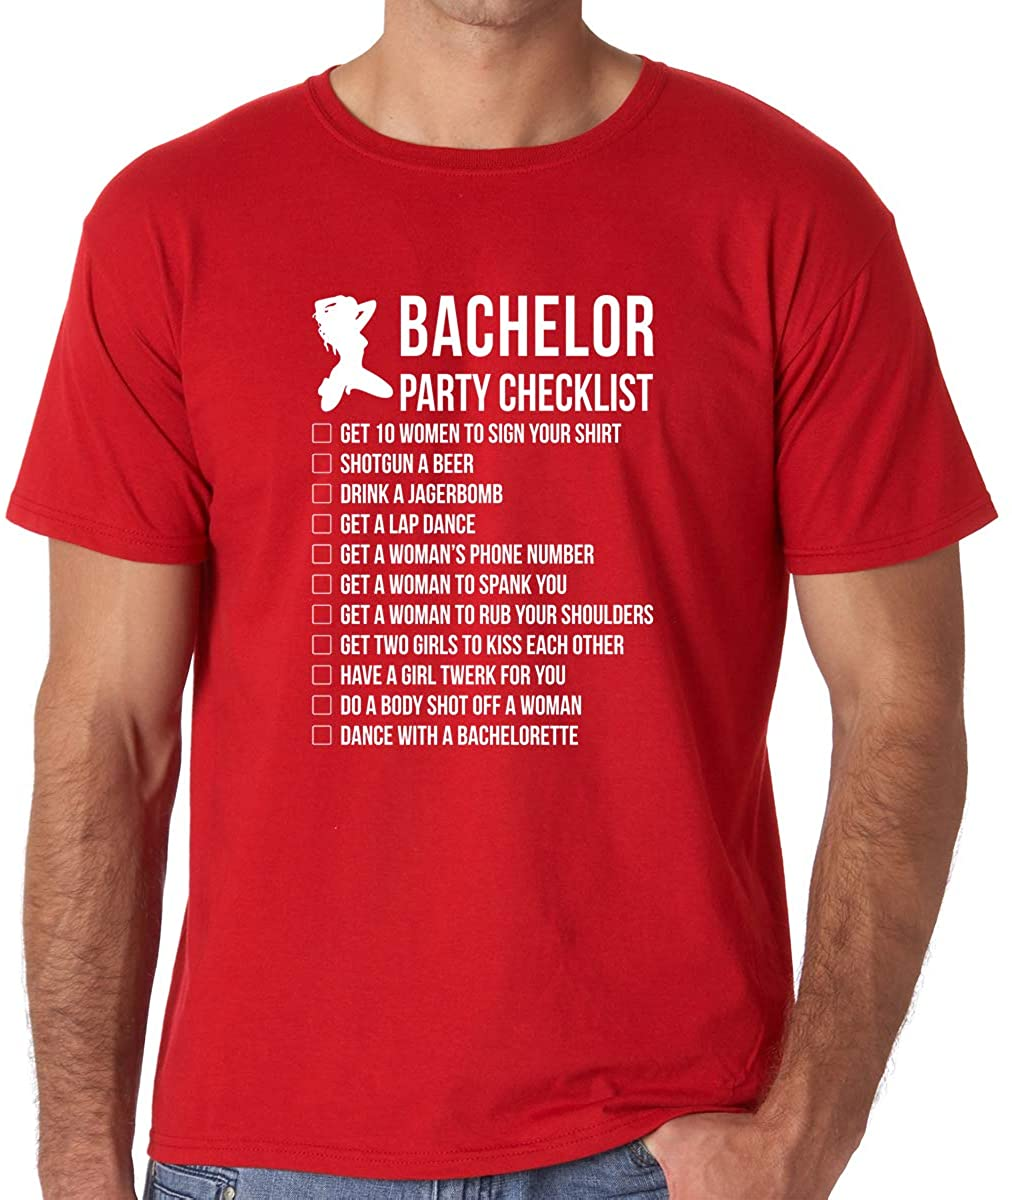 AW Fashions Bachelor Party Checklist - I'm Tying The Knot - Groom to Do List Before Getting Married - Men's Tshirt